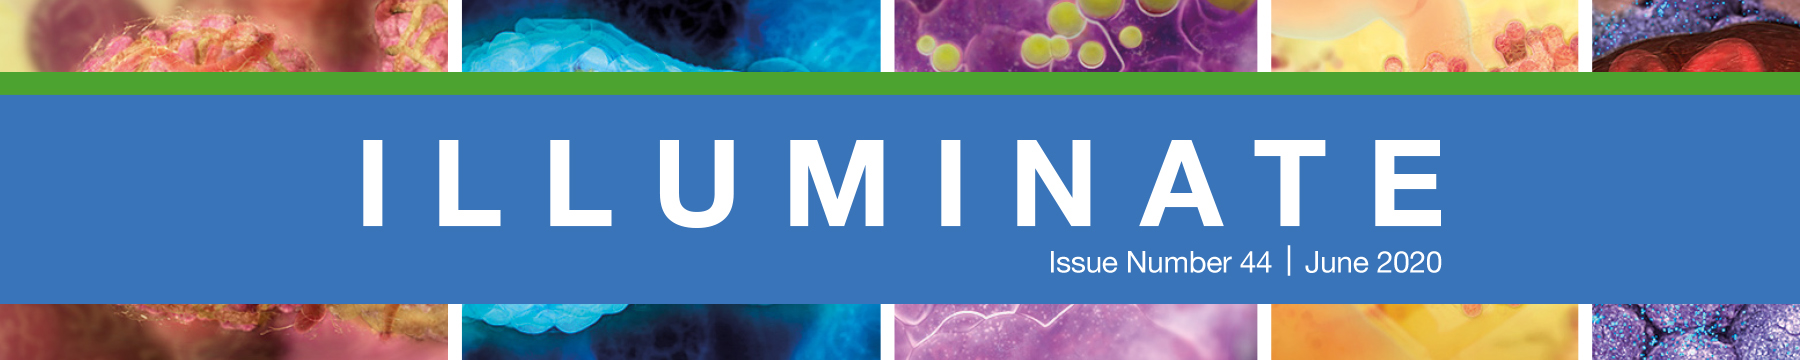 Illuminate newsletter index page, June 2020